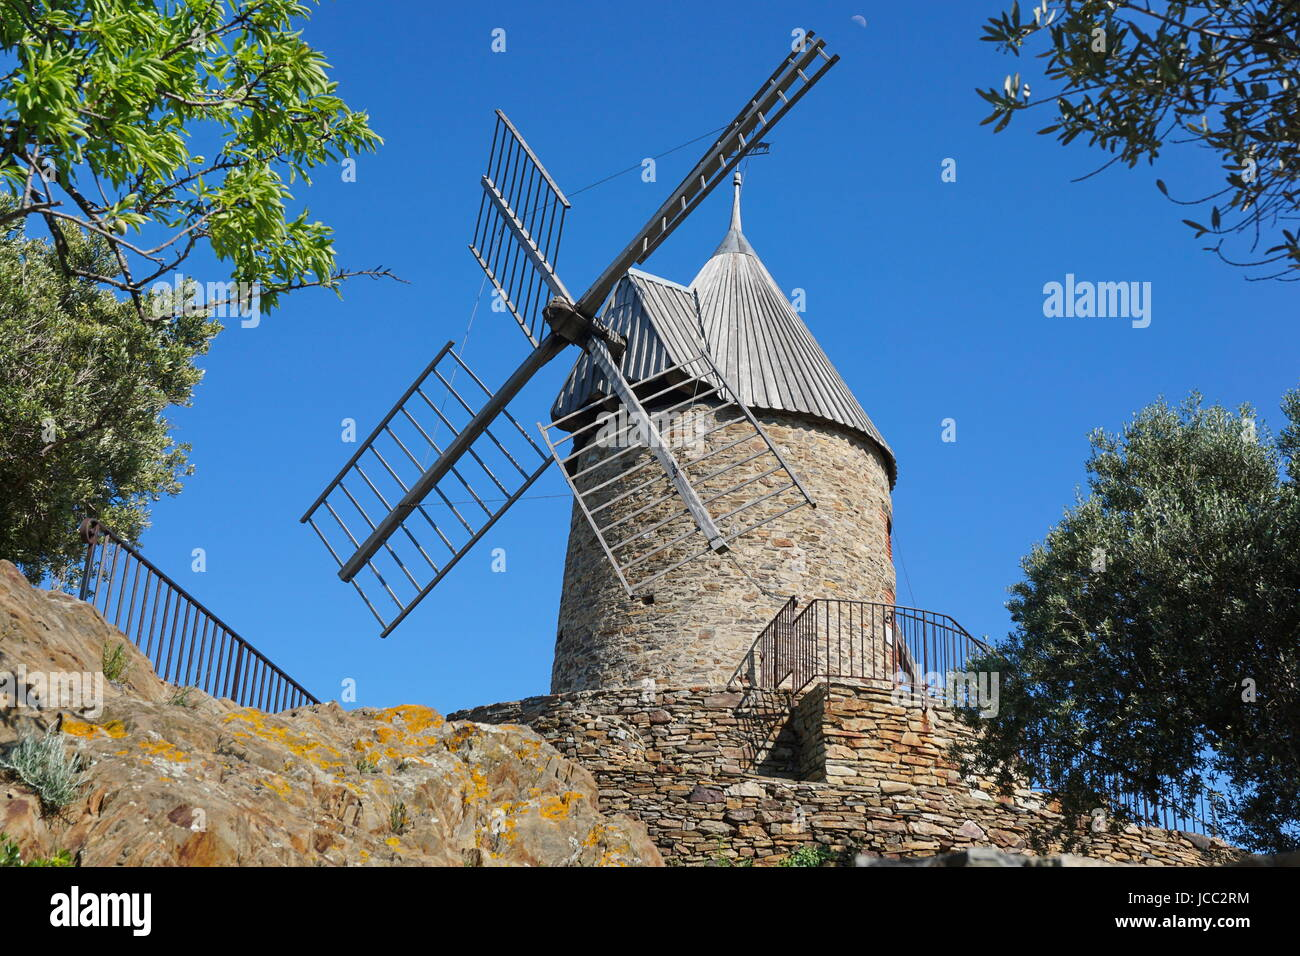 Old windmill made of stones, Collioure, Roussillon, Pyrenees Orientales, south of France - Stock Image